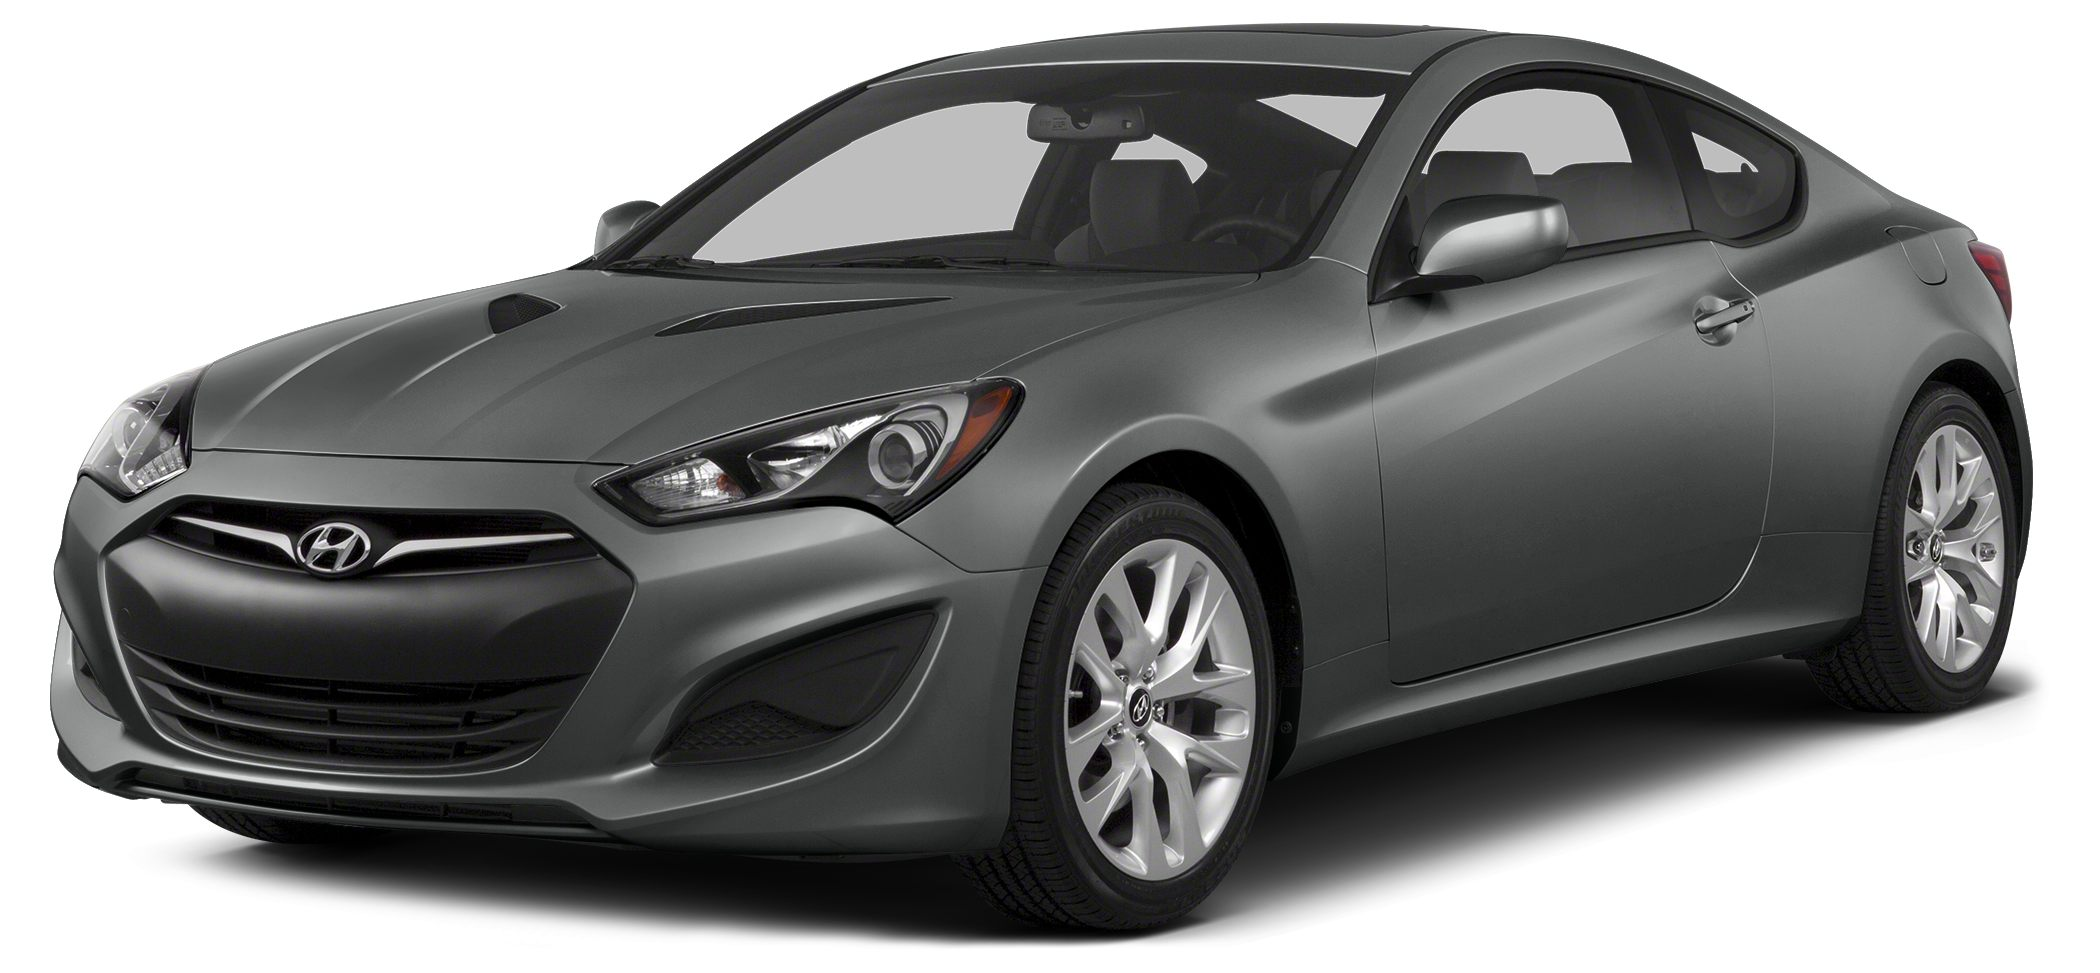 2013 Hyundai Genesis Coupe 20T SAVE AT THE PUMP 30 MPG Hwy Includes a CARFAX buyback guarante